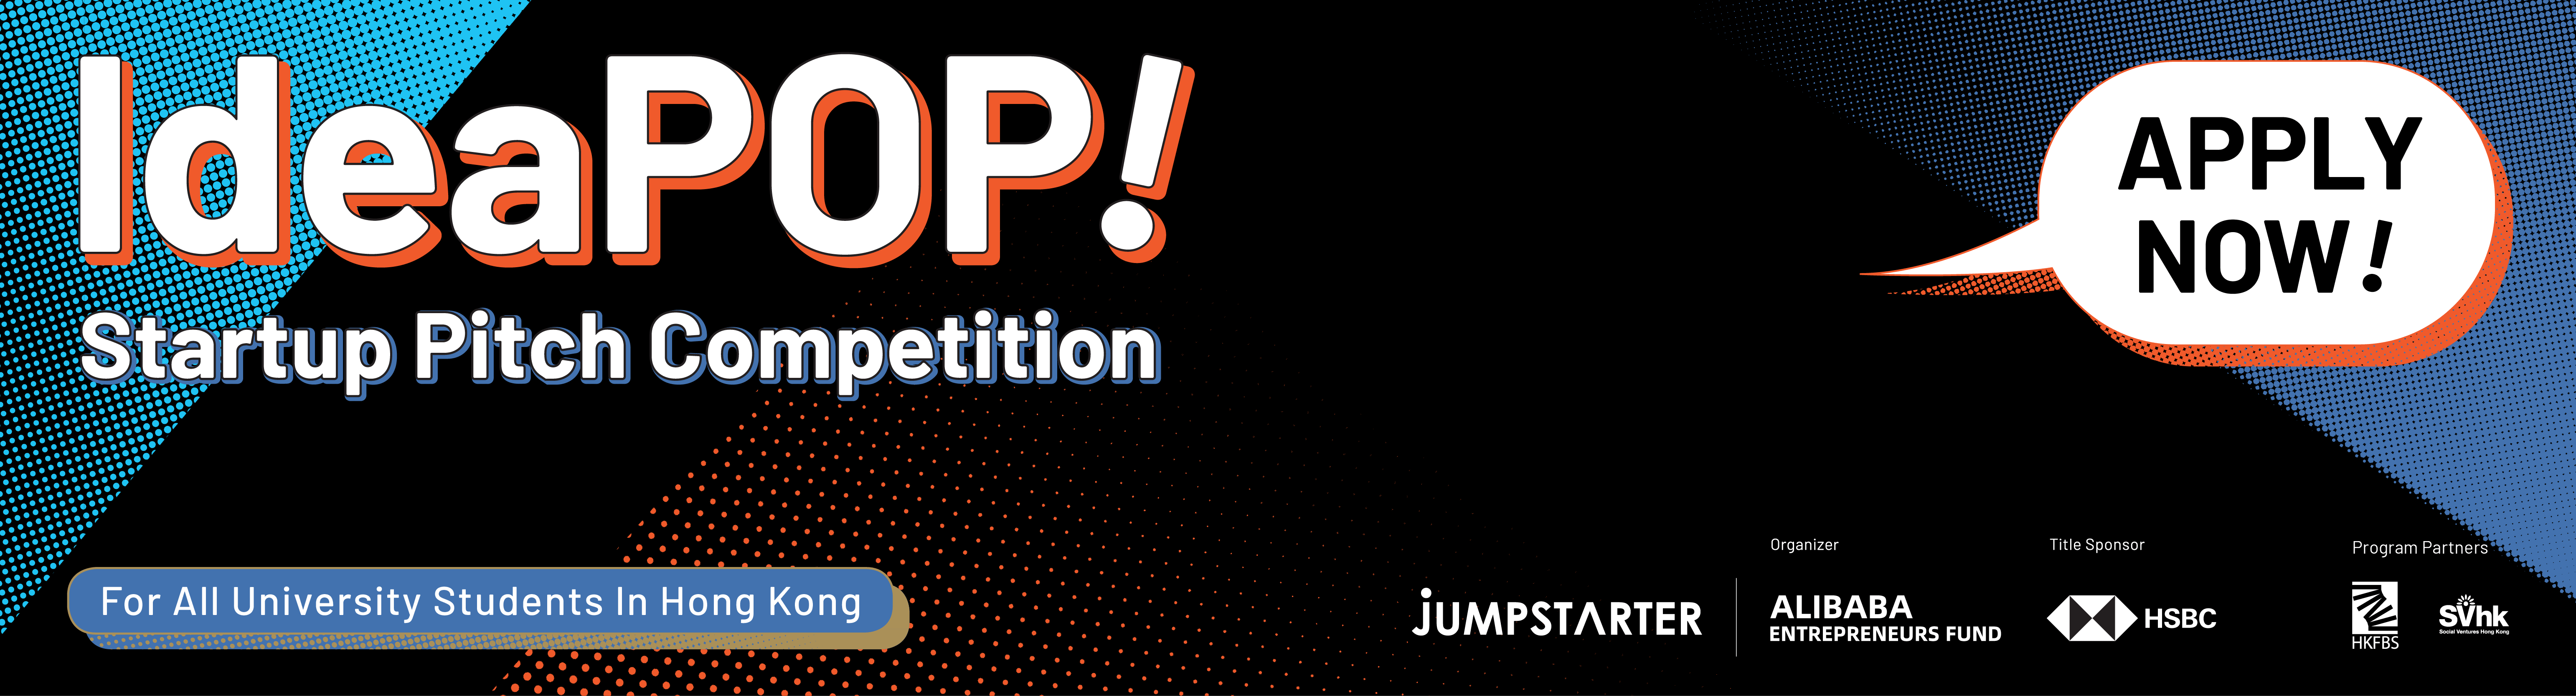 JUMPSTARTER IdeaPOP! is a first-of-its-kind entrepreneurial even